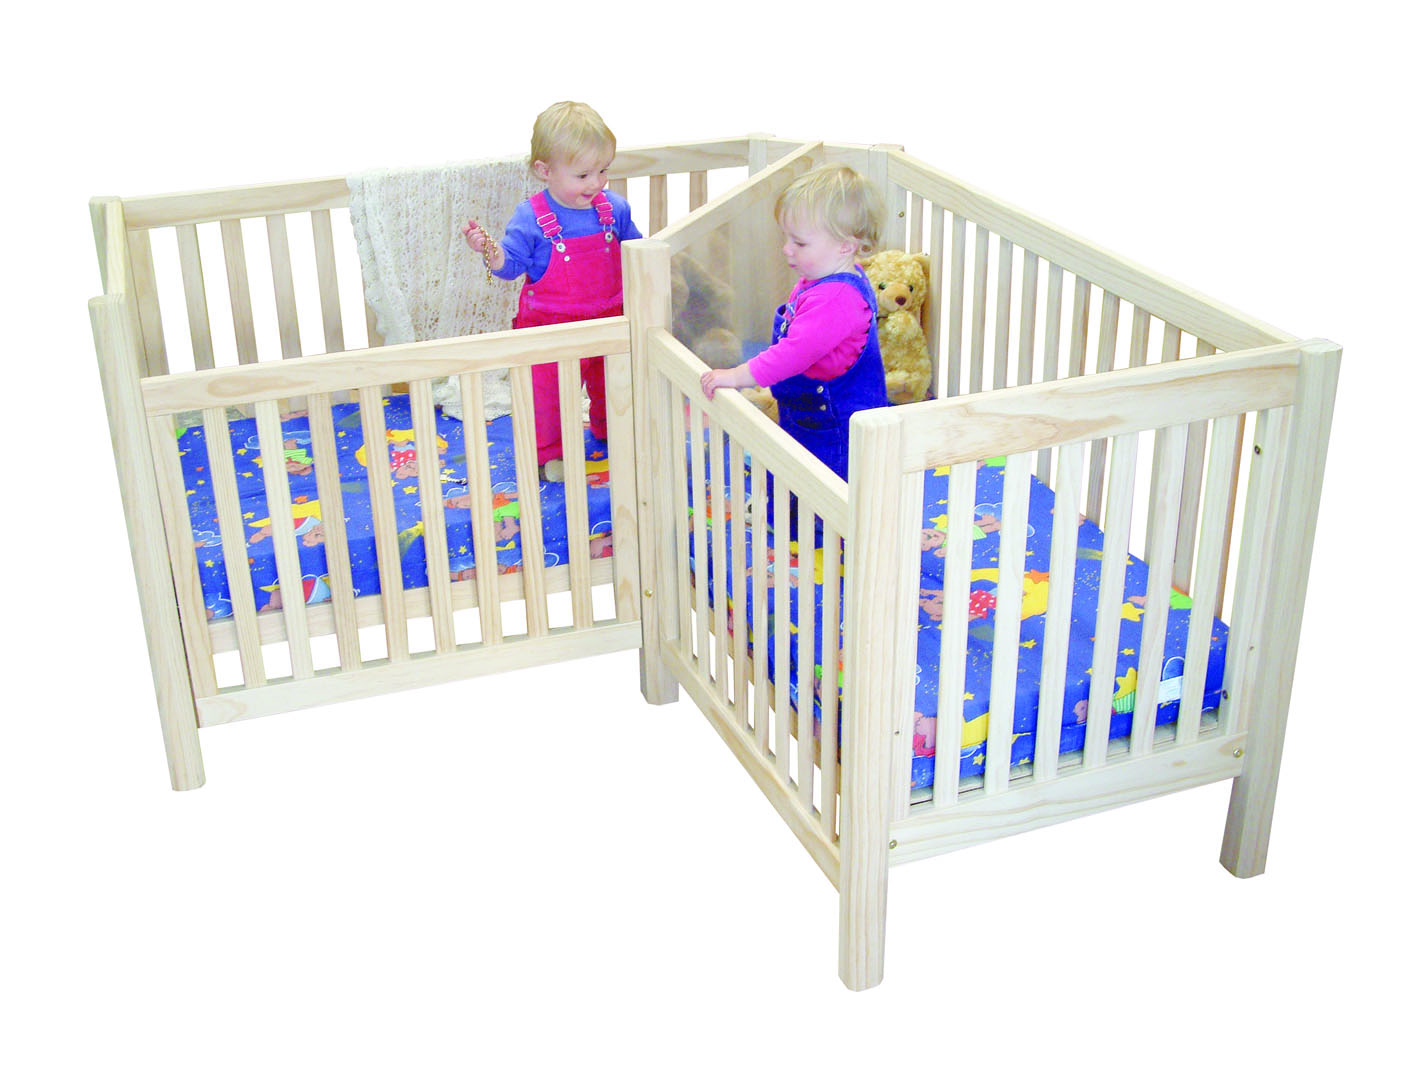 Crib for sale in davao city - Baby Crib For Sale Online Philippines Baby Crib For Sale Online Philippines 42